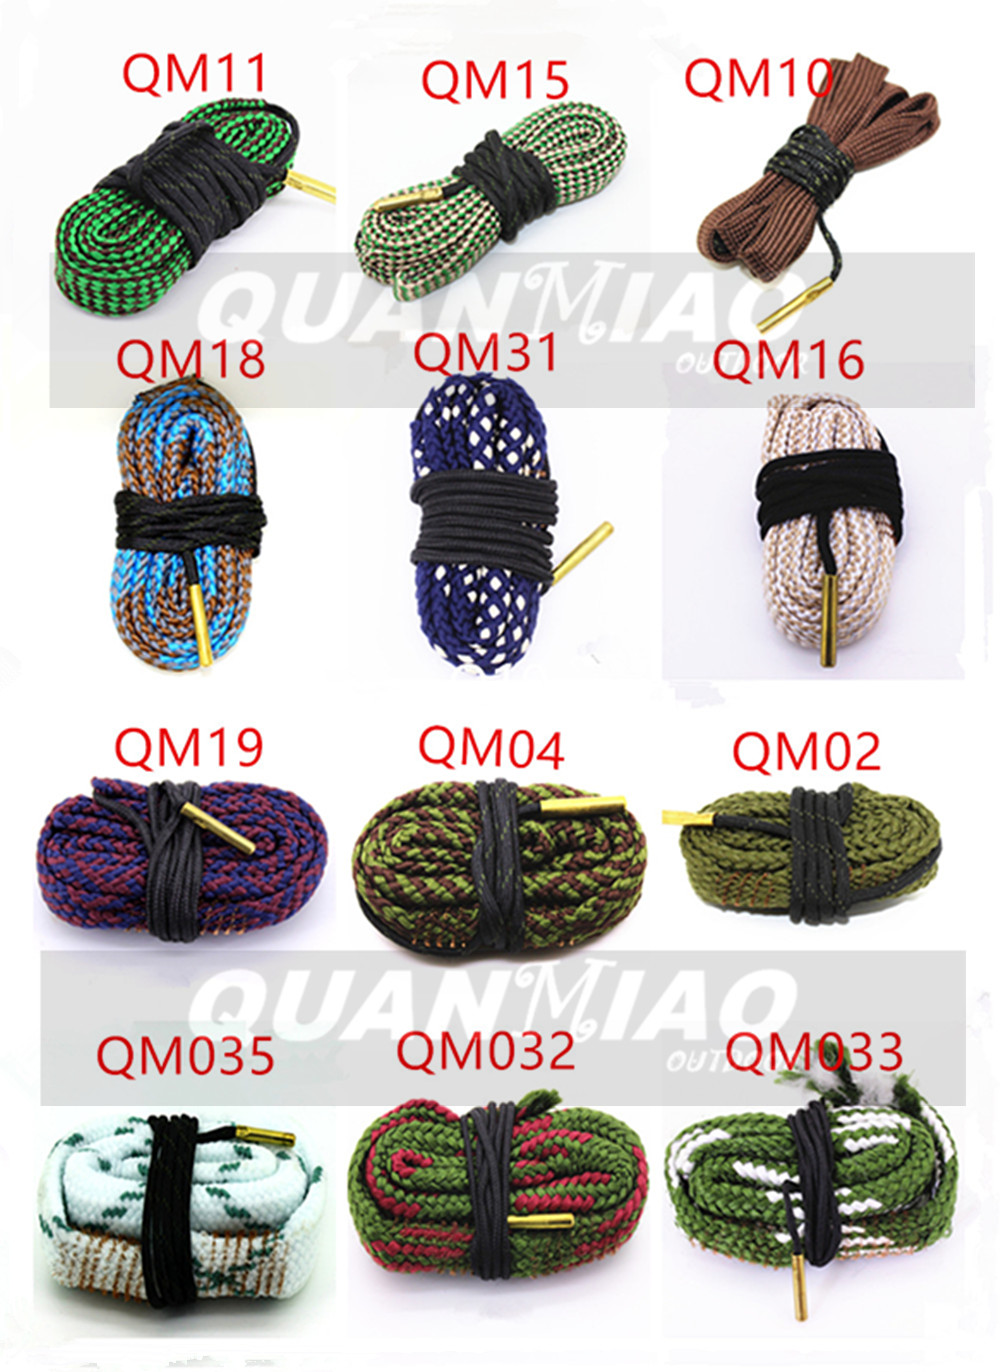 Hunting Gun Bore Cleaner Snake.22 Cal.223 Cal.38 Cal& 5.56mm,7.62mm,12GA Rifle Cleaning Kit Tool Pistol Barrel Cal Snake Rope